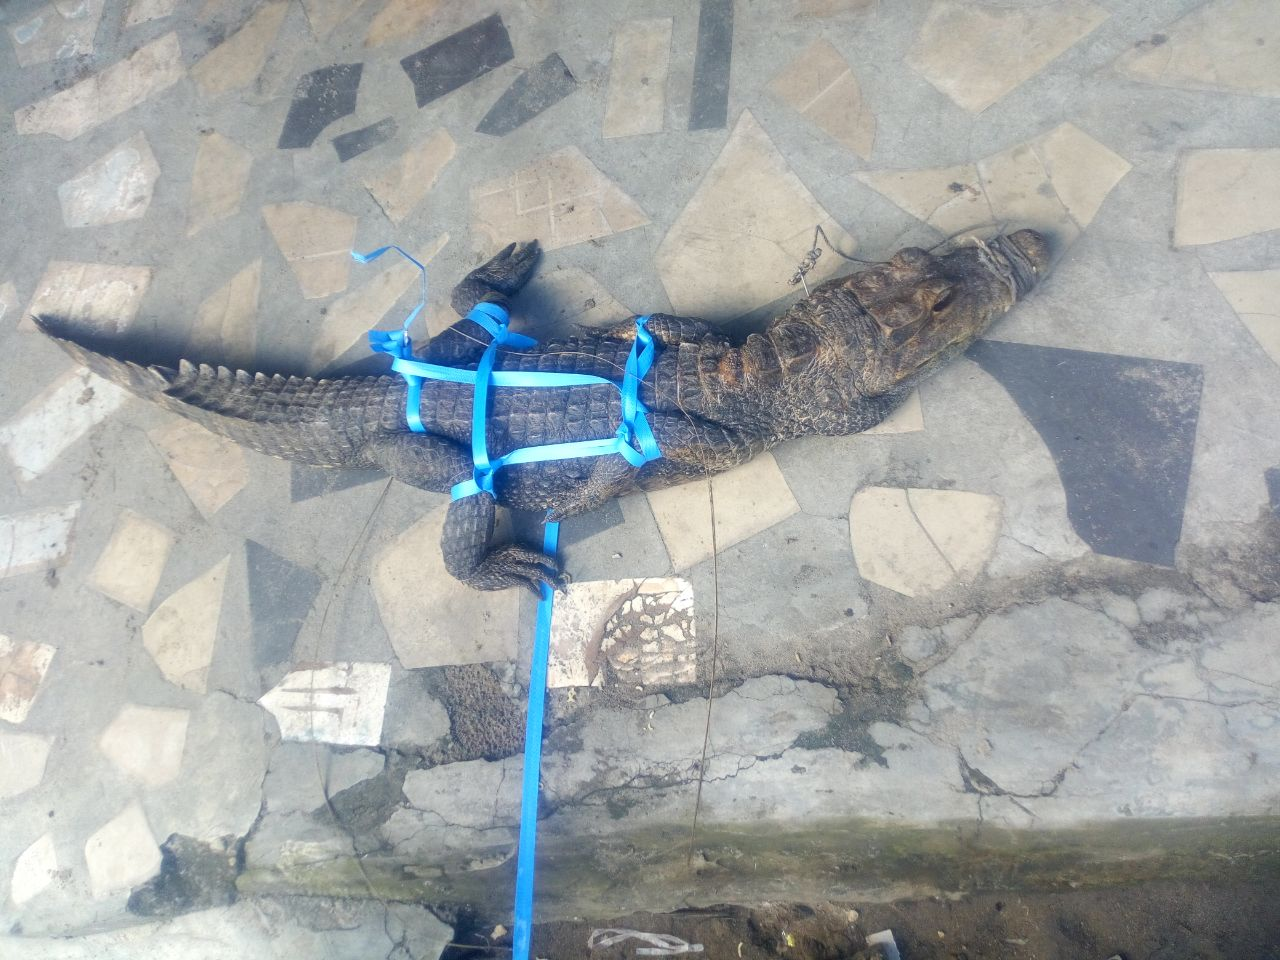 See The Huge Monitor Lizard My Friends Trap Caught At ...